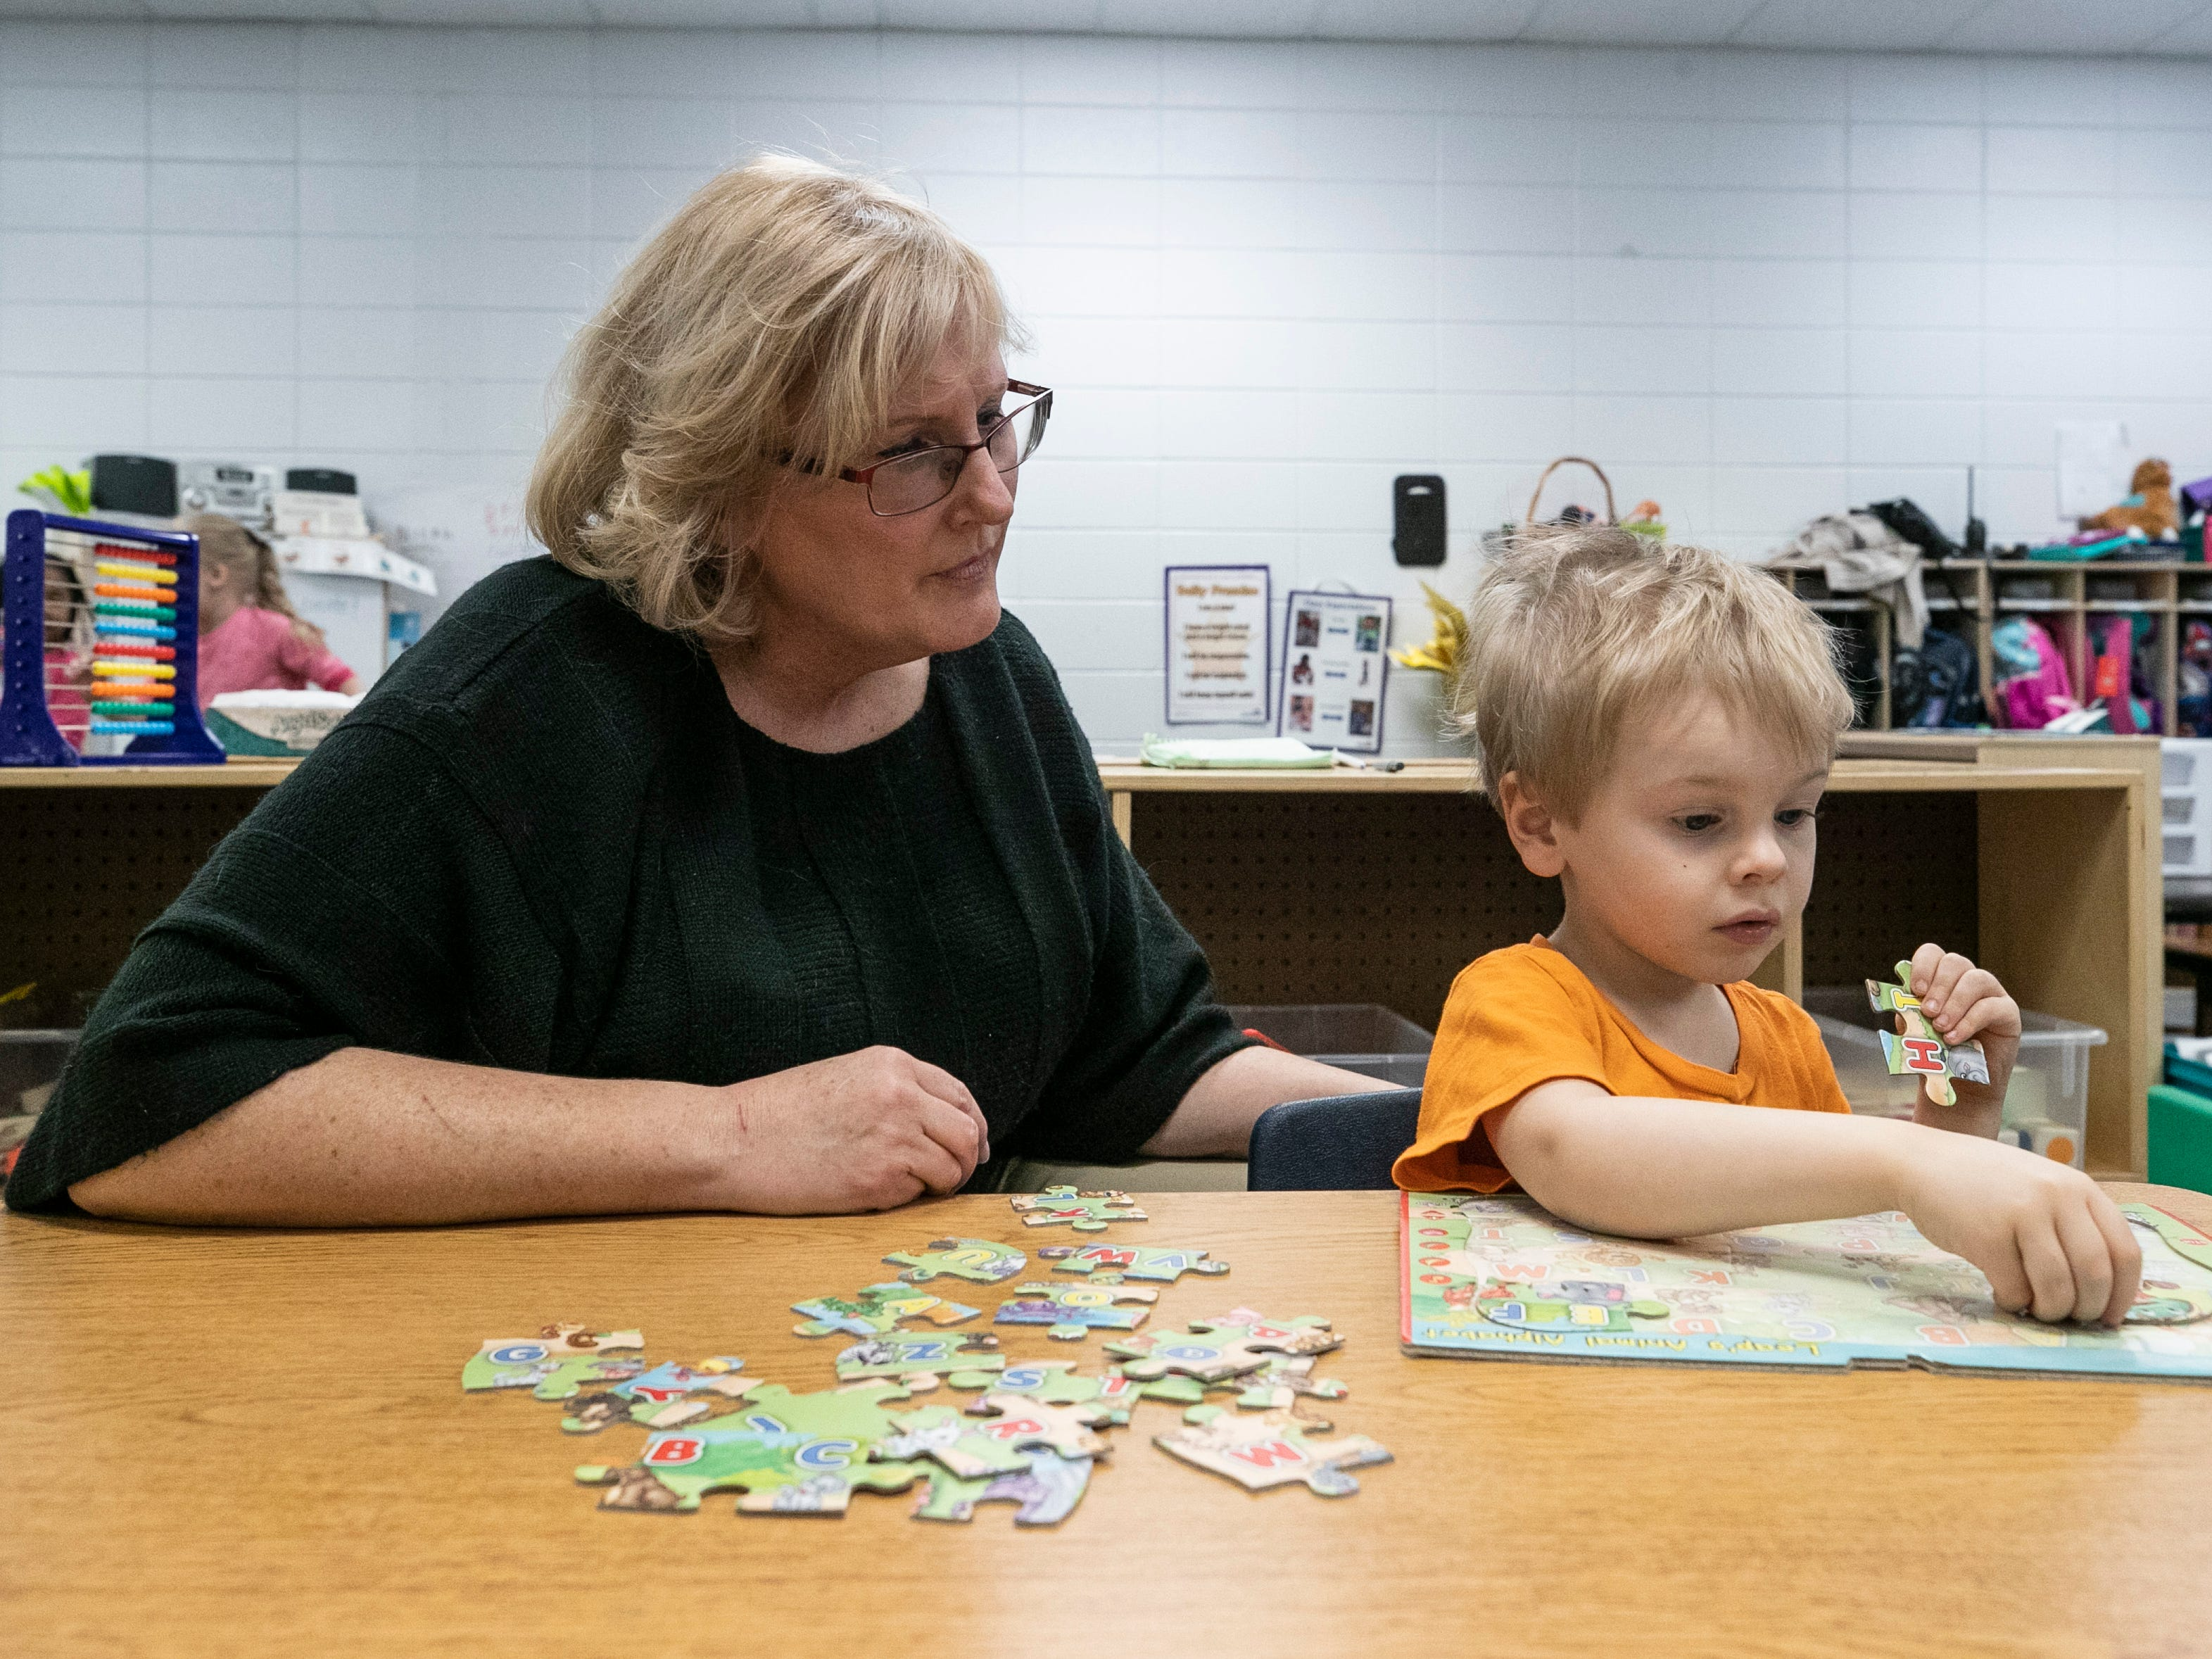 Tabitha Pitman, lead instructional assistant, works with three-year-old Brenden Monk at the Westport Early Childhood Center recently.